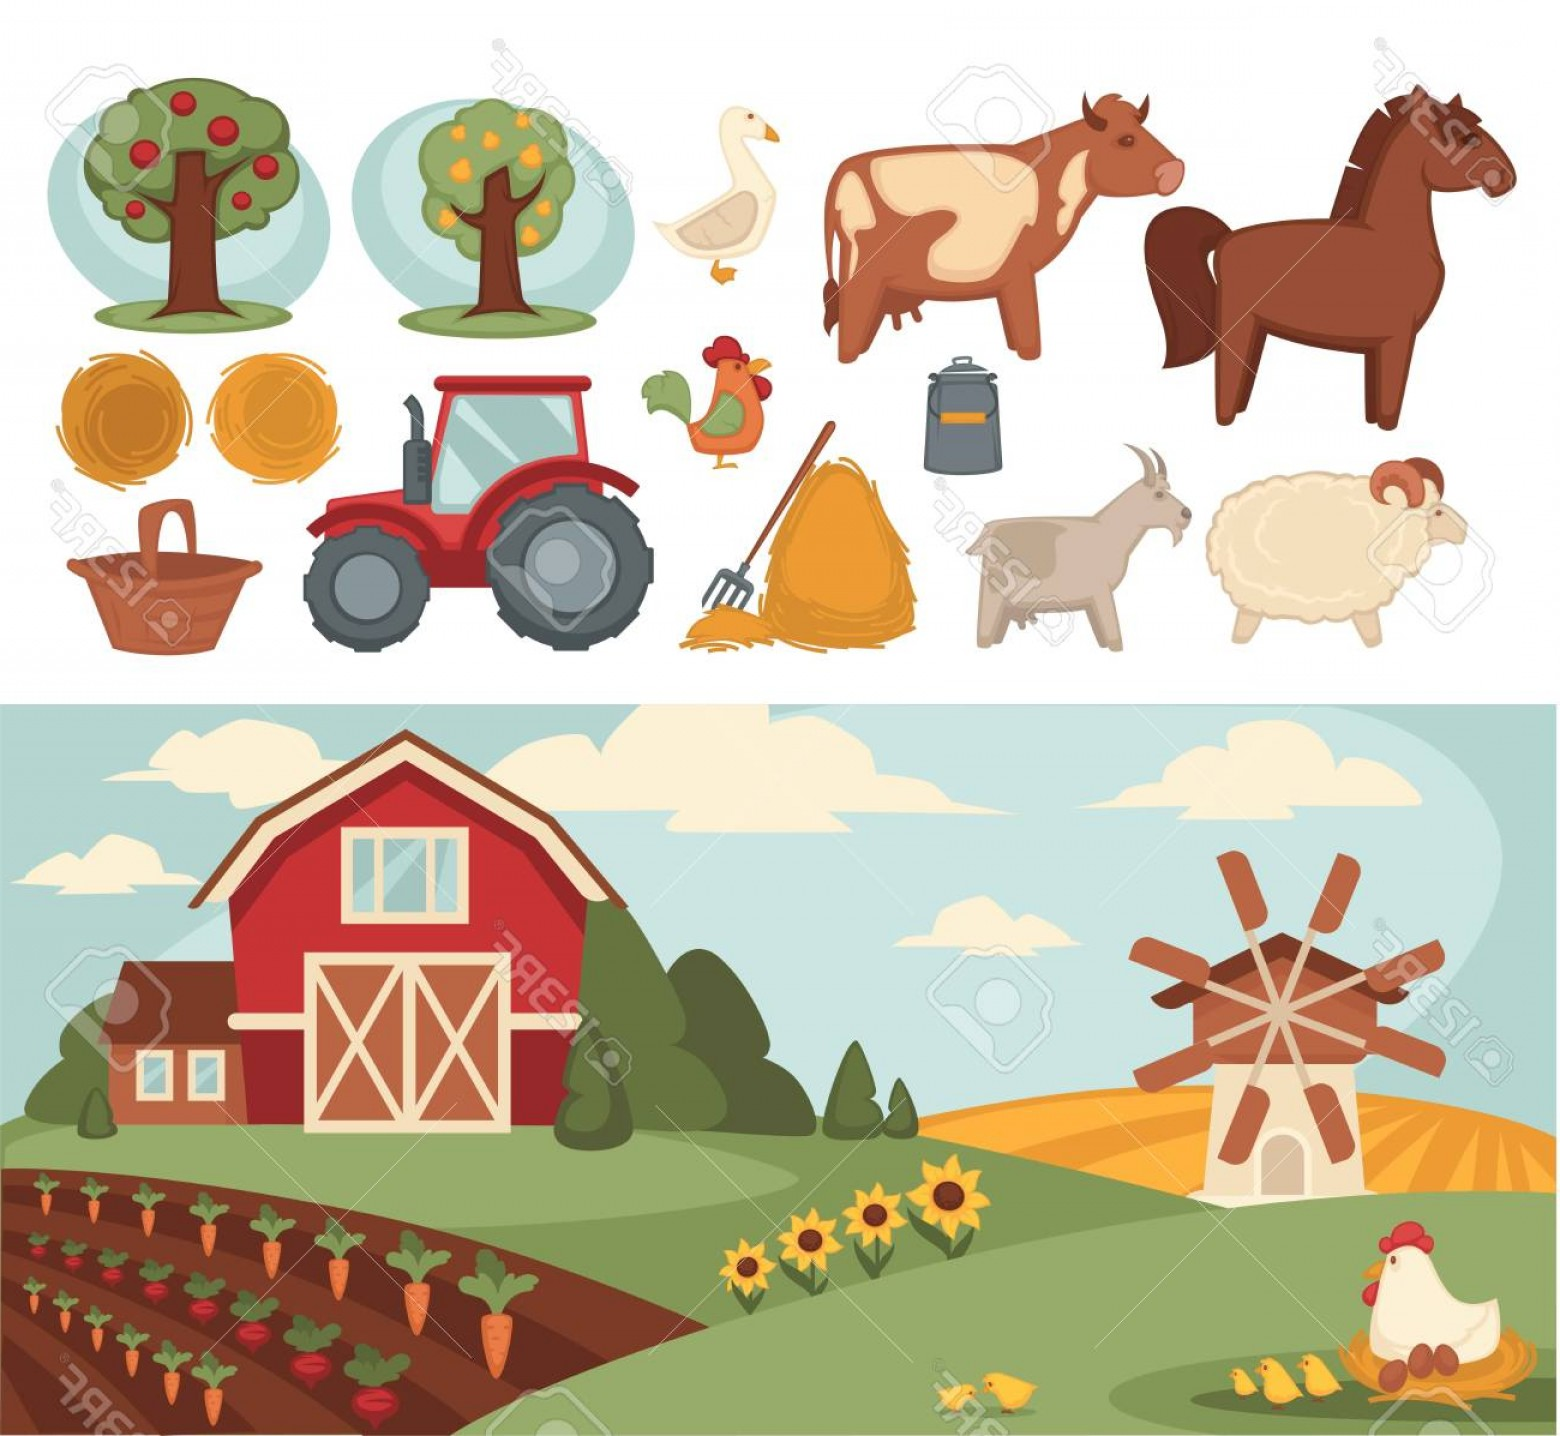 1560x1436 Photostock Vector Farm Household Or Farmer Agriculture And Cattle